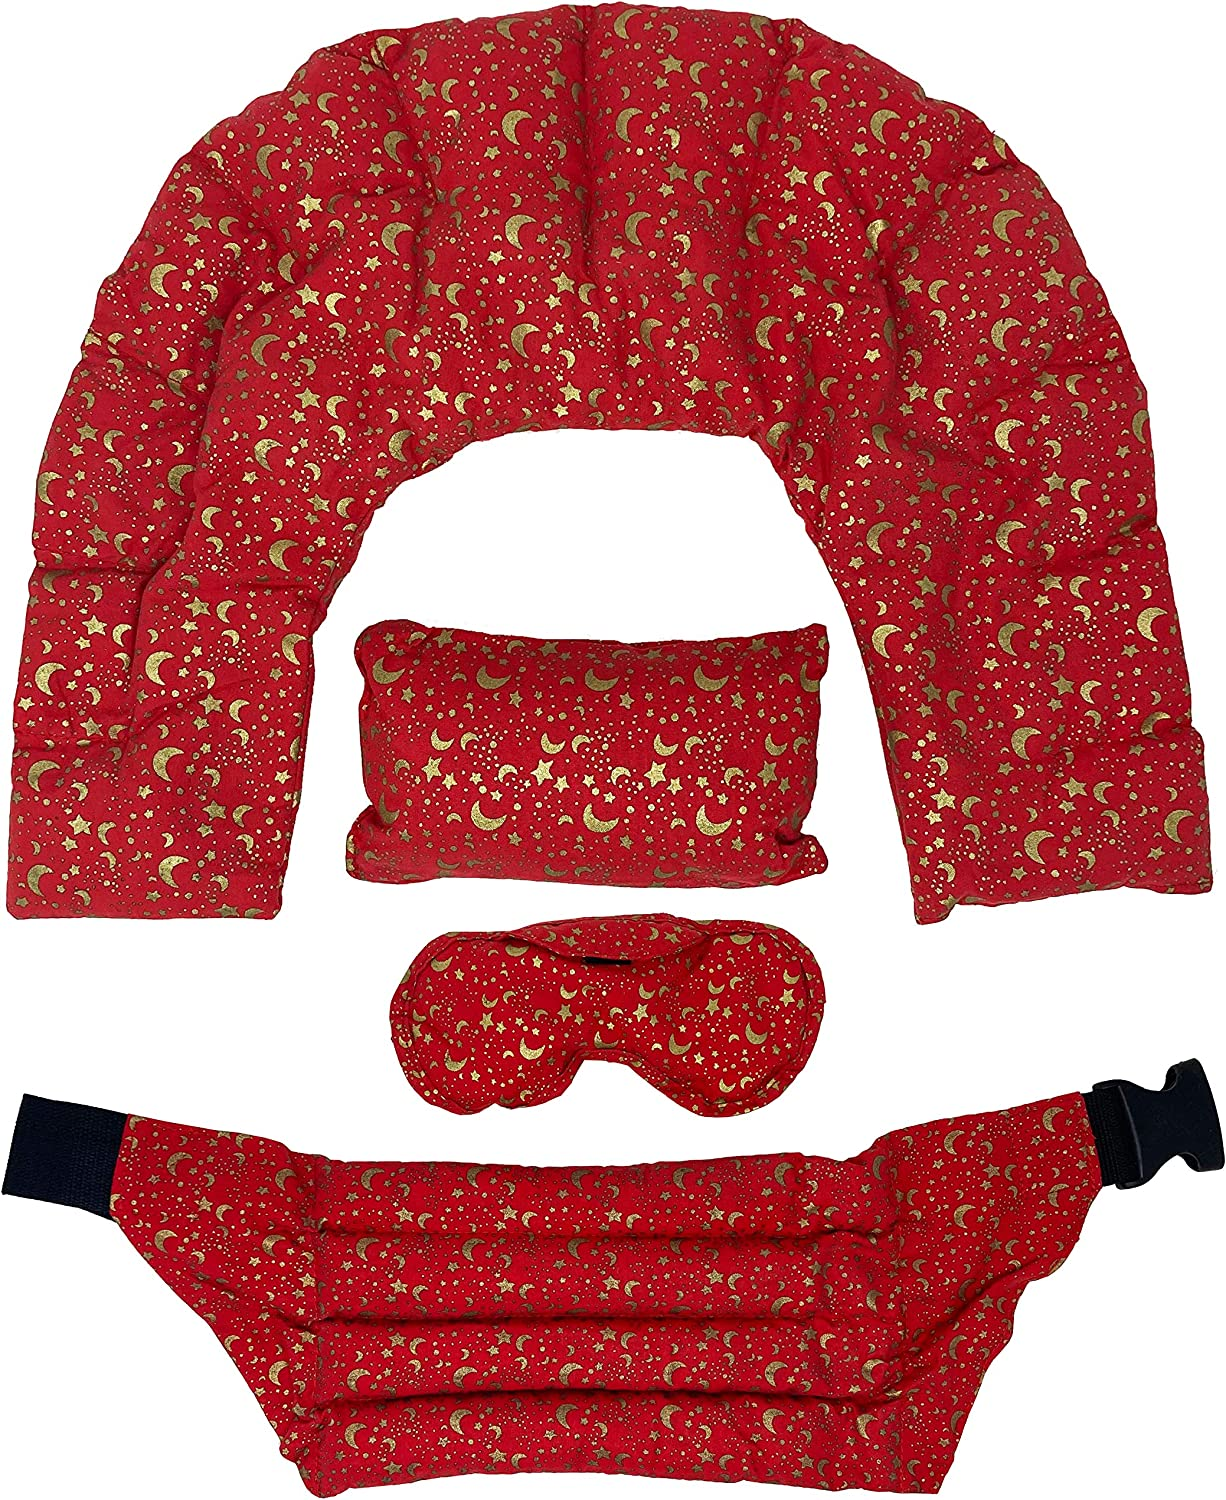 Nature's Approach A-HP-125-RED Home Spa 4-Piece Heating Pad Set with Herbal Aromatherapy Fill Freezer Safe and Microwavable for Hot and Cold Therapy, Red